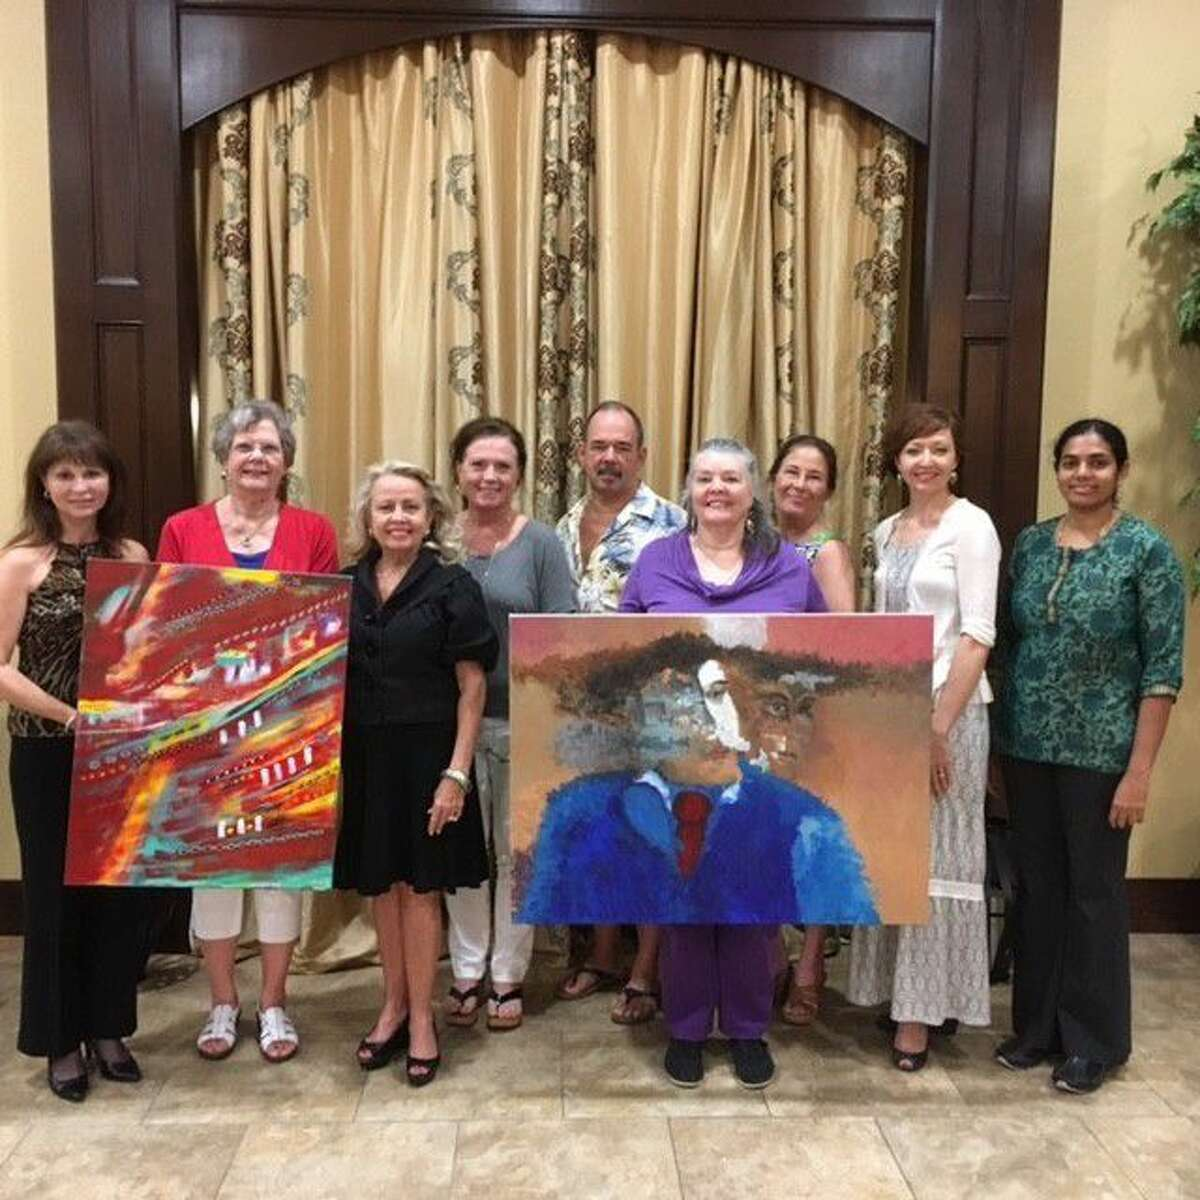 Pictured, left to right, are Heidi Wiess, Director of Pearland Alliance for Arts and Culture; Margo Green, Co-Chair for